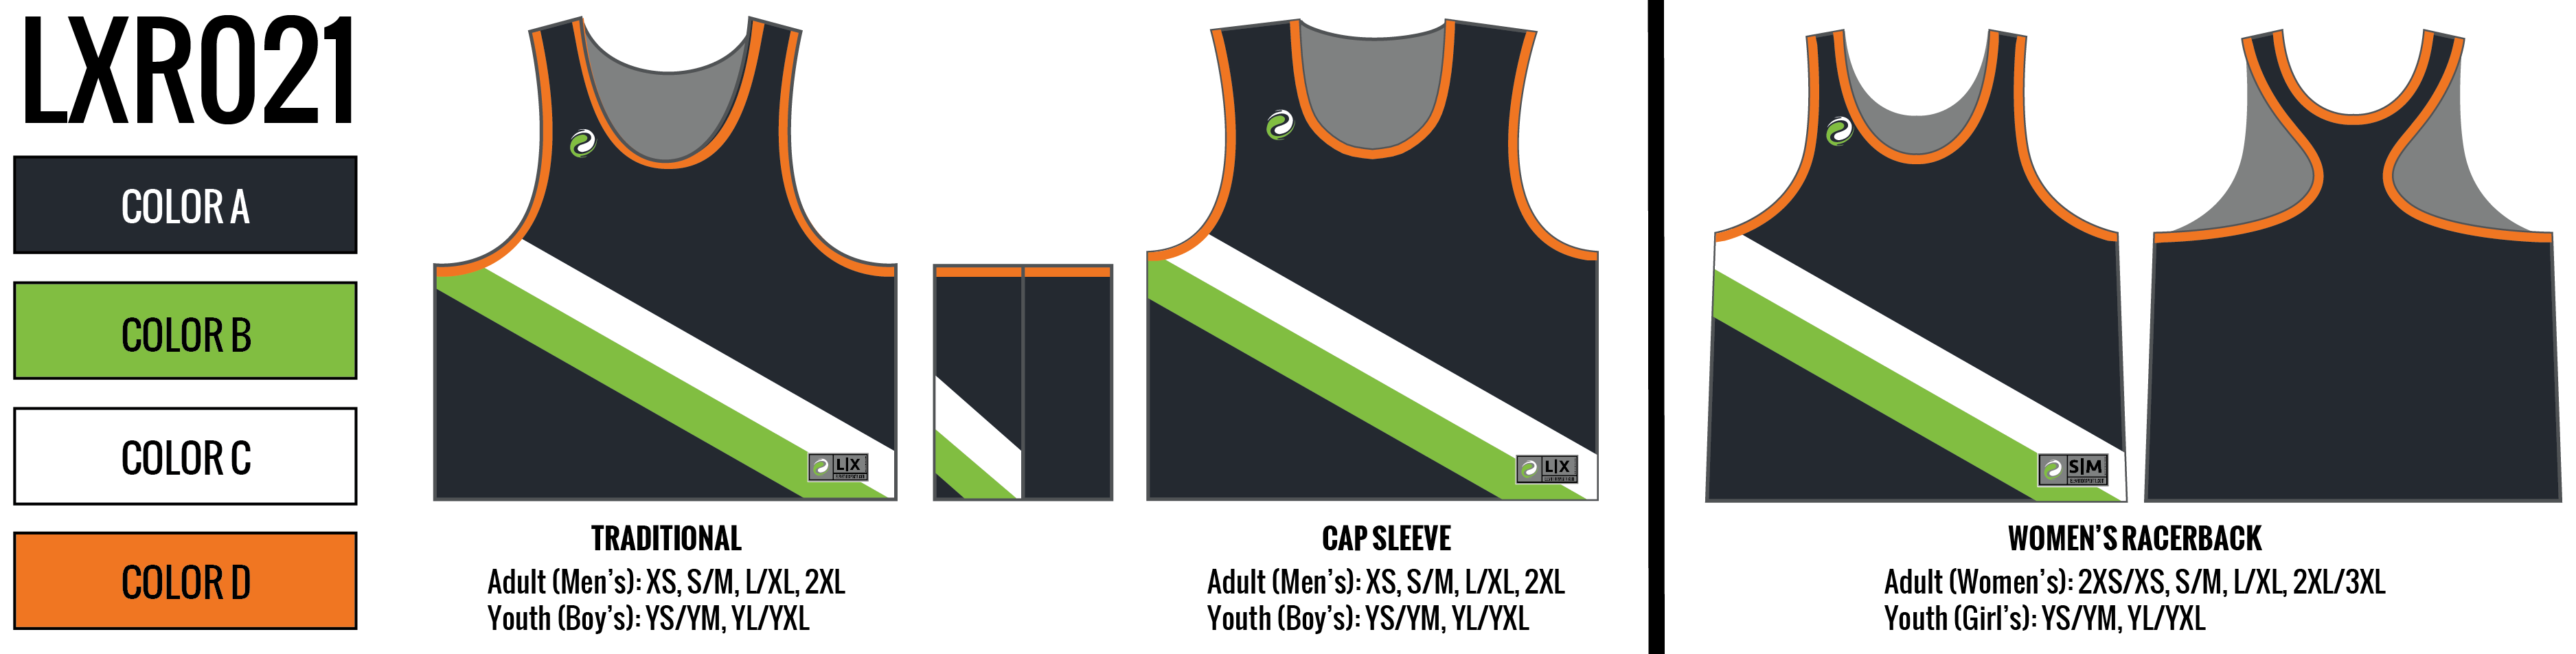 Custom Sublimated Lacrosse Pinnies - Design LXR21